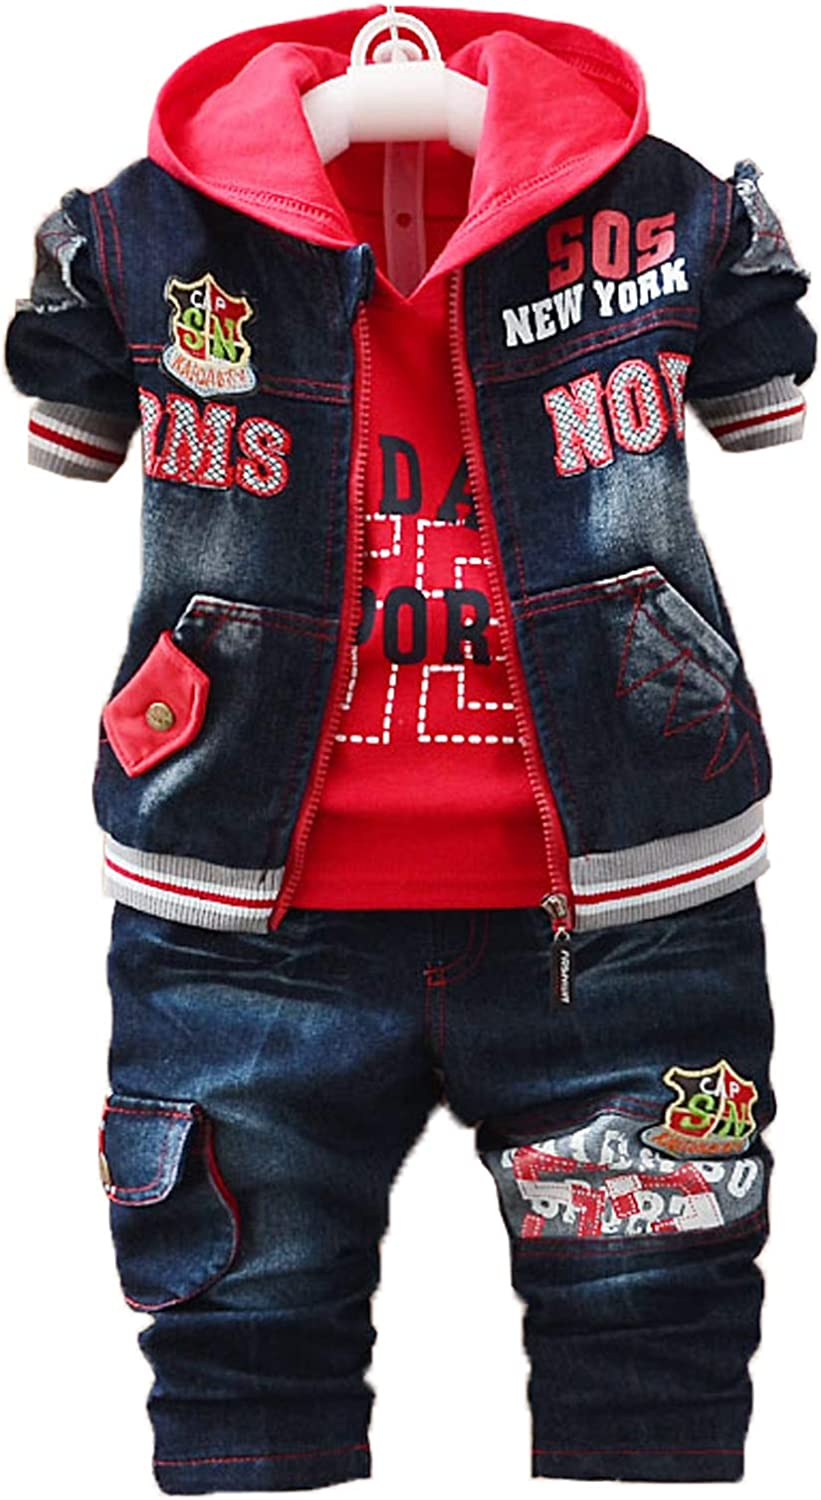 Yao Spring Autumn Baby Boys 3pcs Shirt Jeans Max 68% List price OFF Cotton Set Clothing